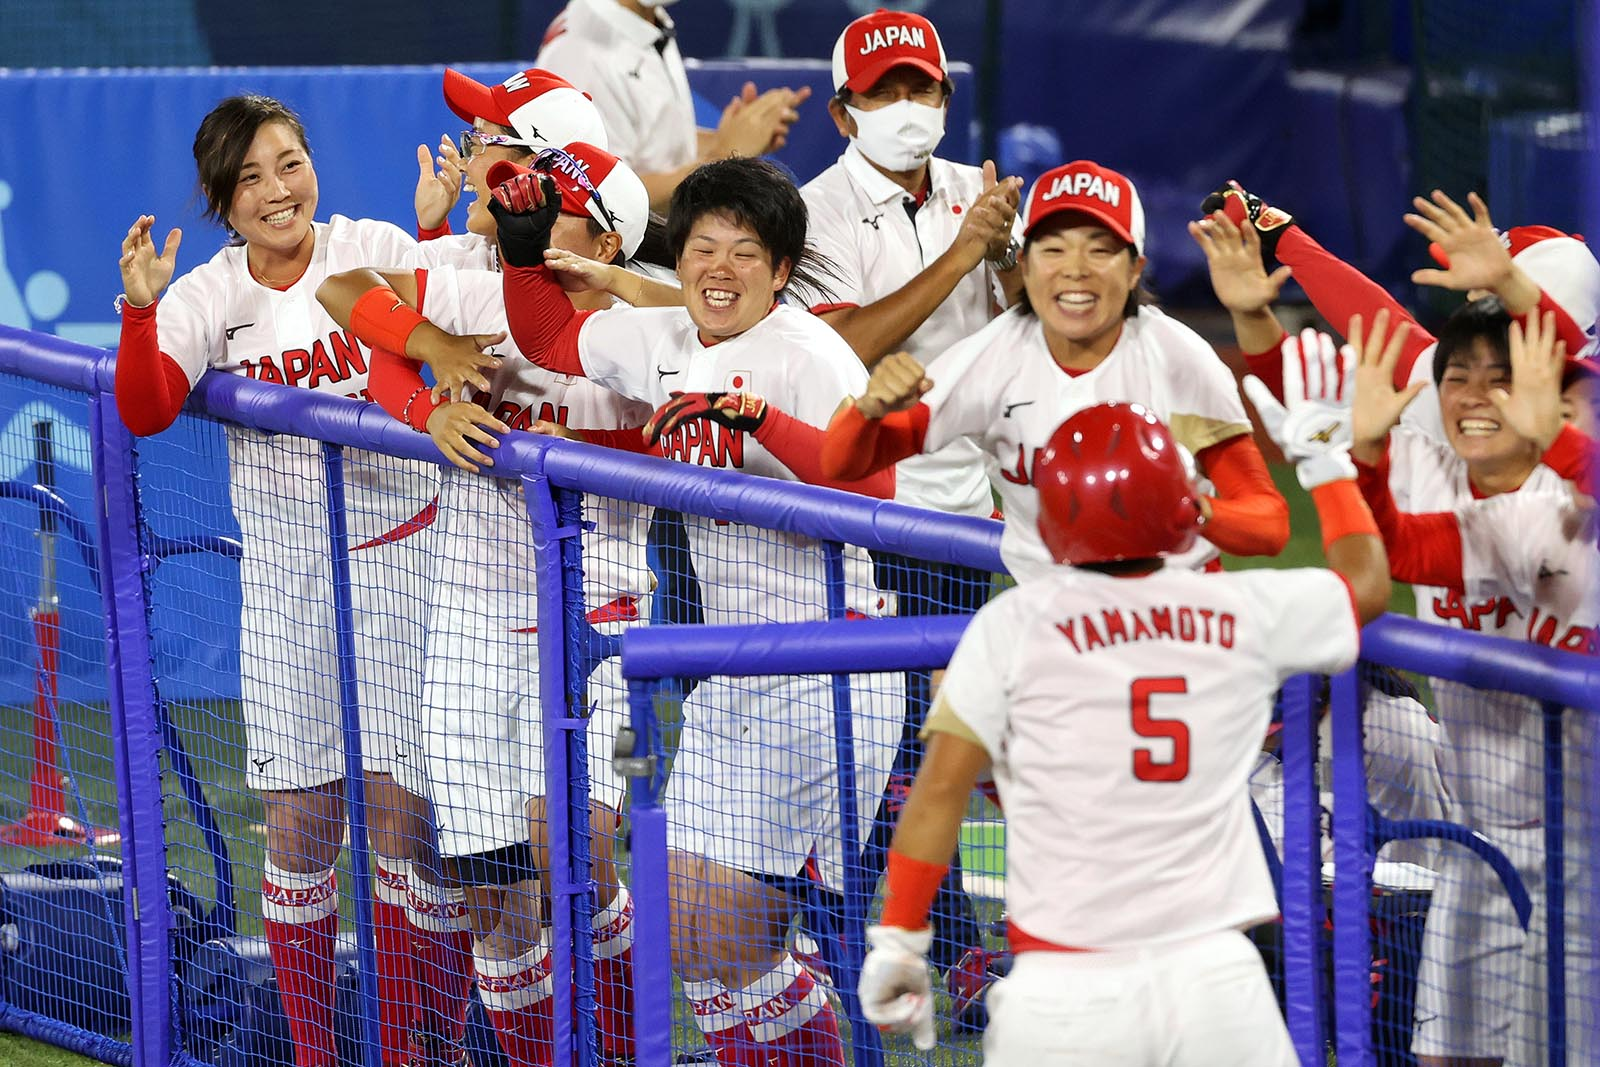 Yu Yamamoto #5 of Team Japan returns to the dugout after scoring in the fifth inning against Team USA during the softball final on July 27, in Yokohama, Japan.